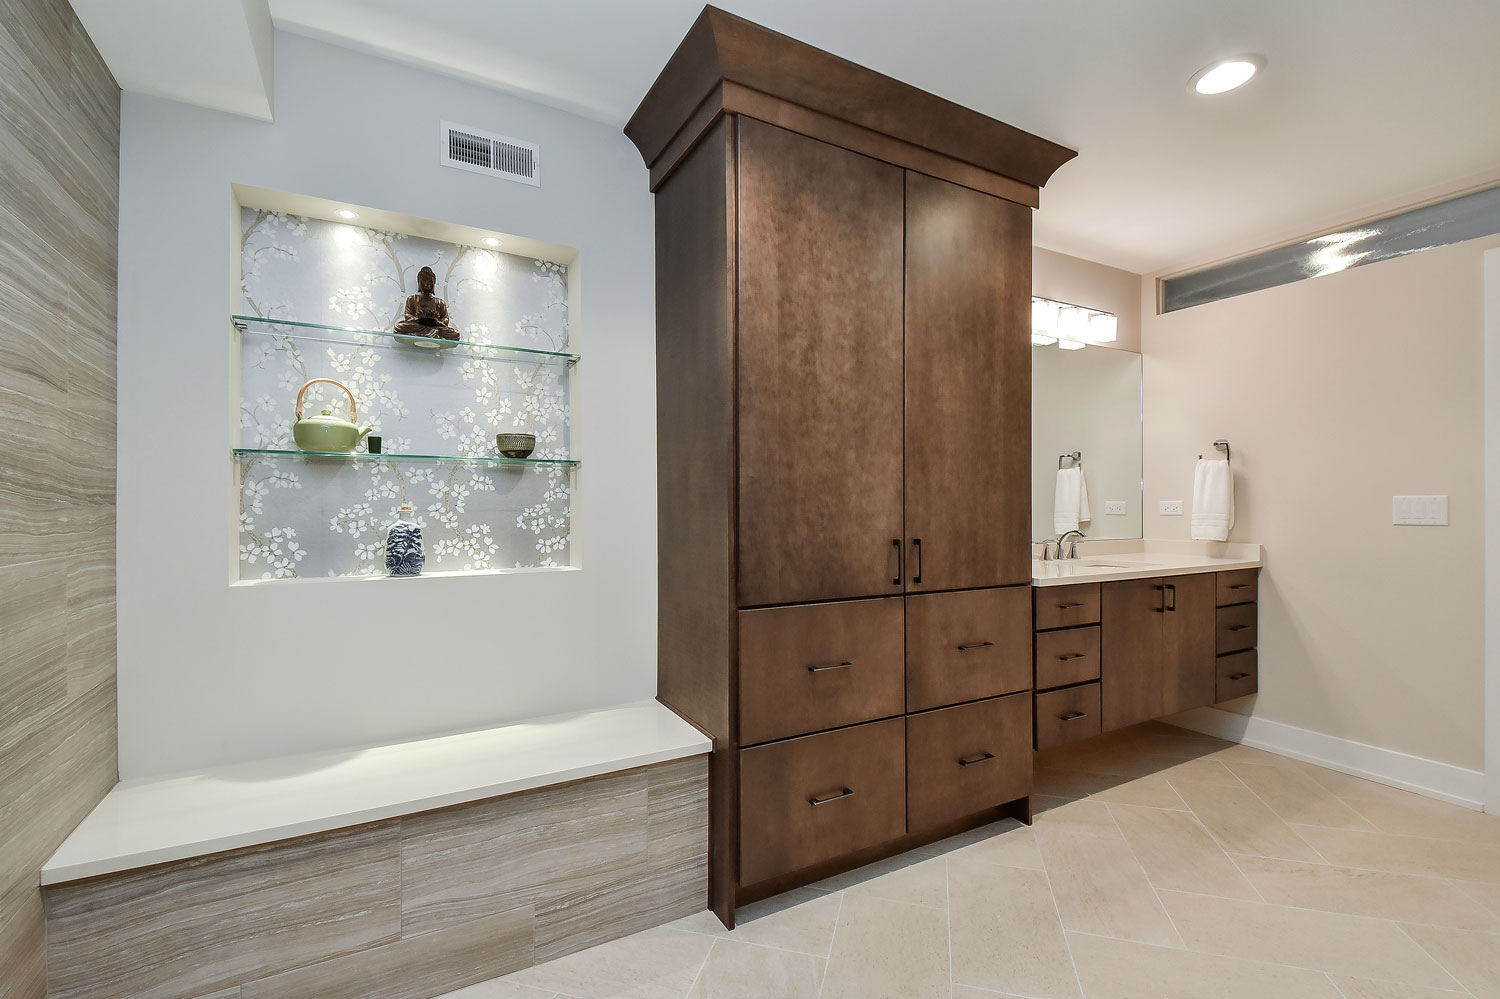 Wheaton Basement Bathroom With Steam Shower, Electronic Controlled Shower - Sebring Design Build